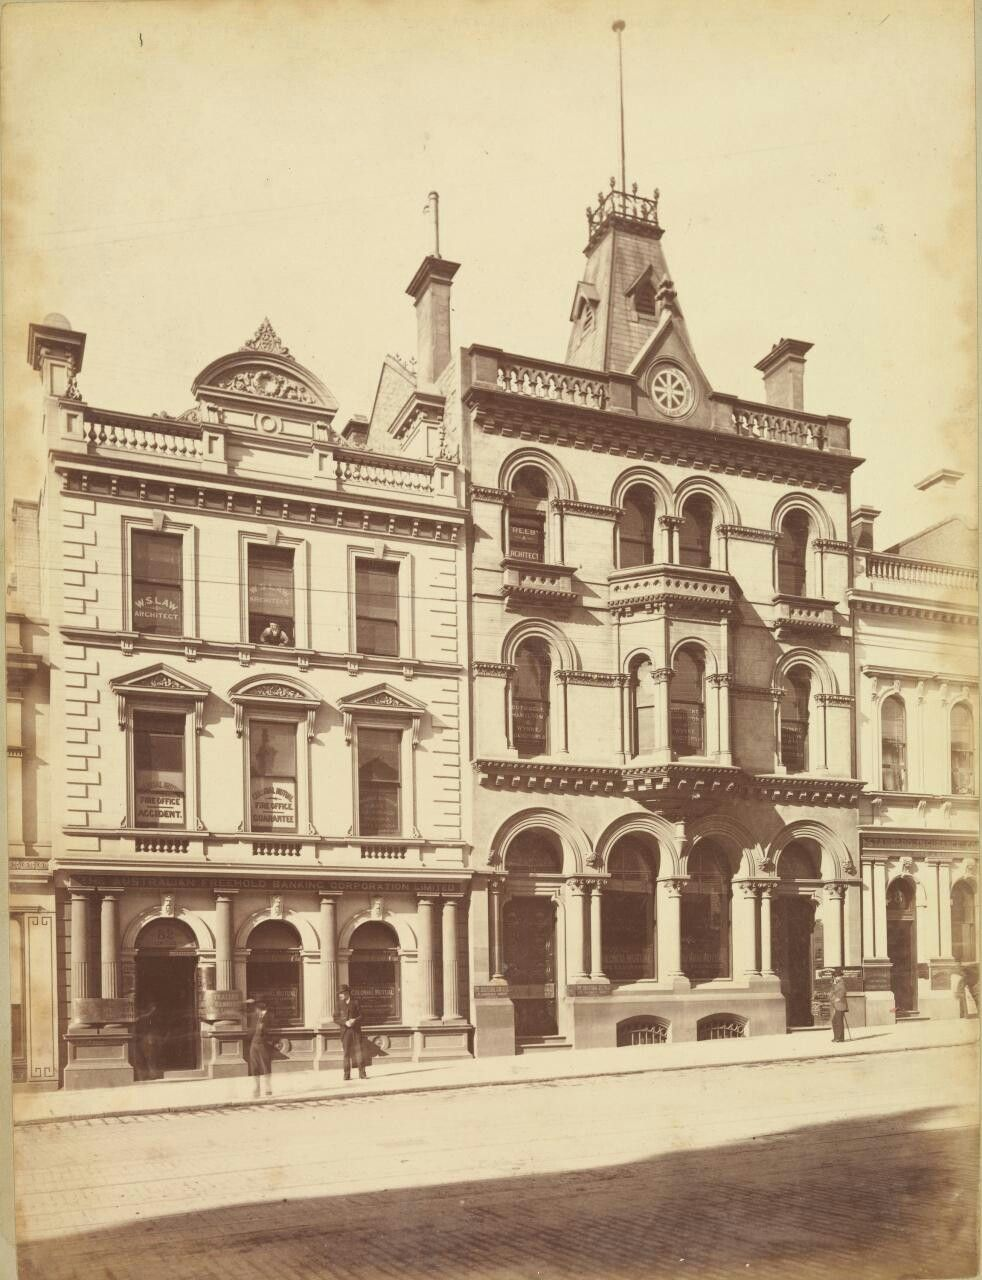 Colonial mutual insurance co on collins st westmelbourne